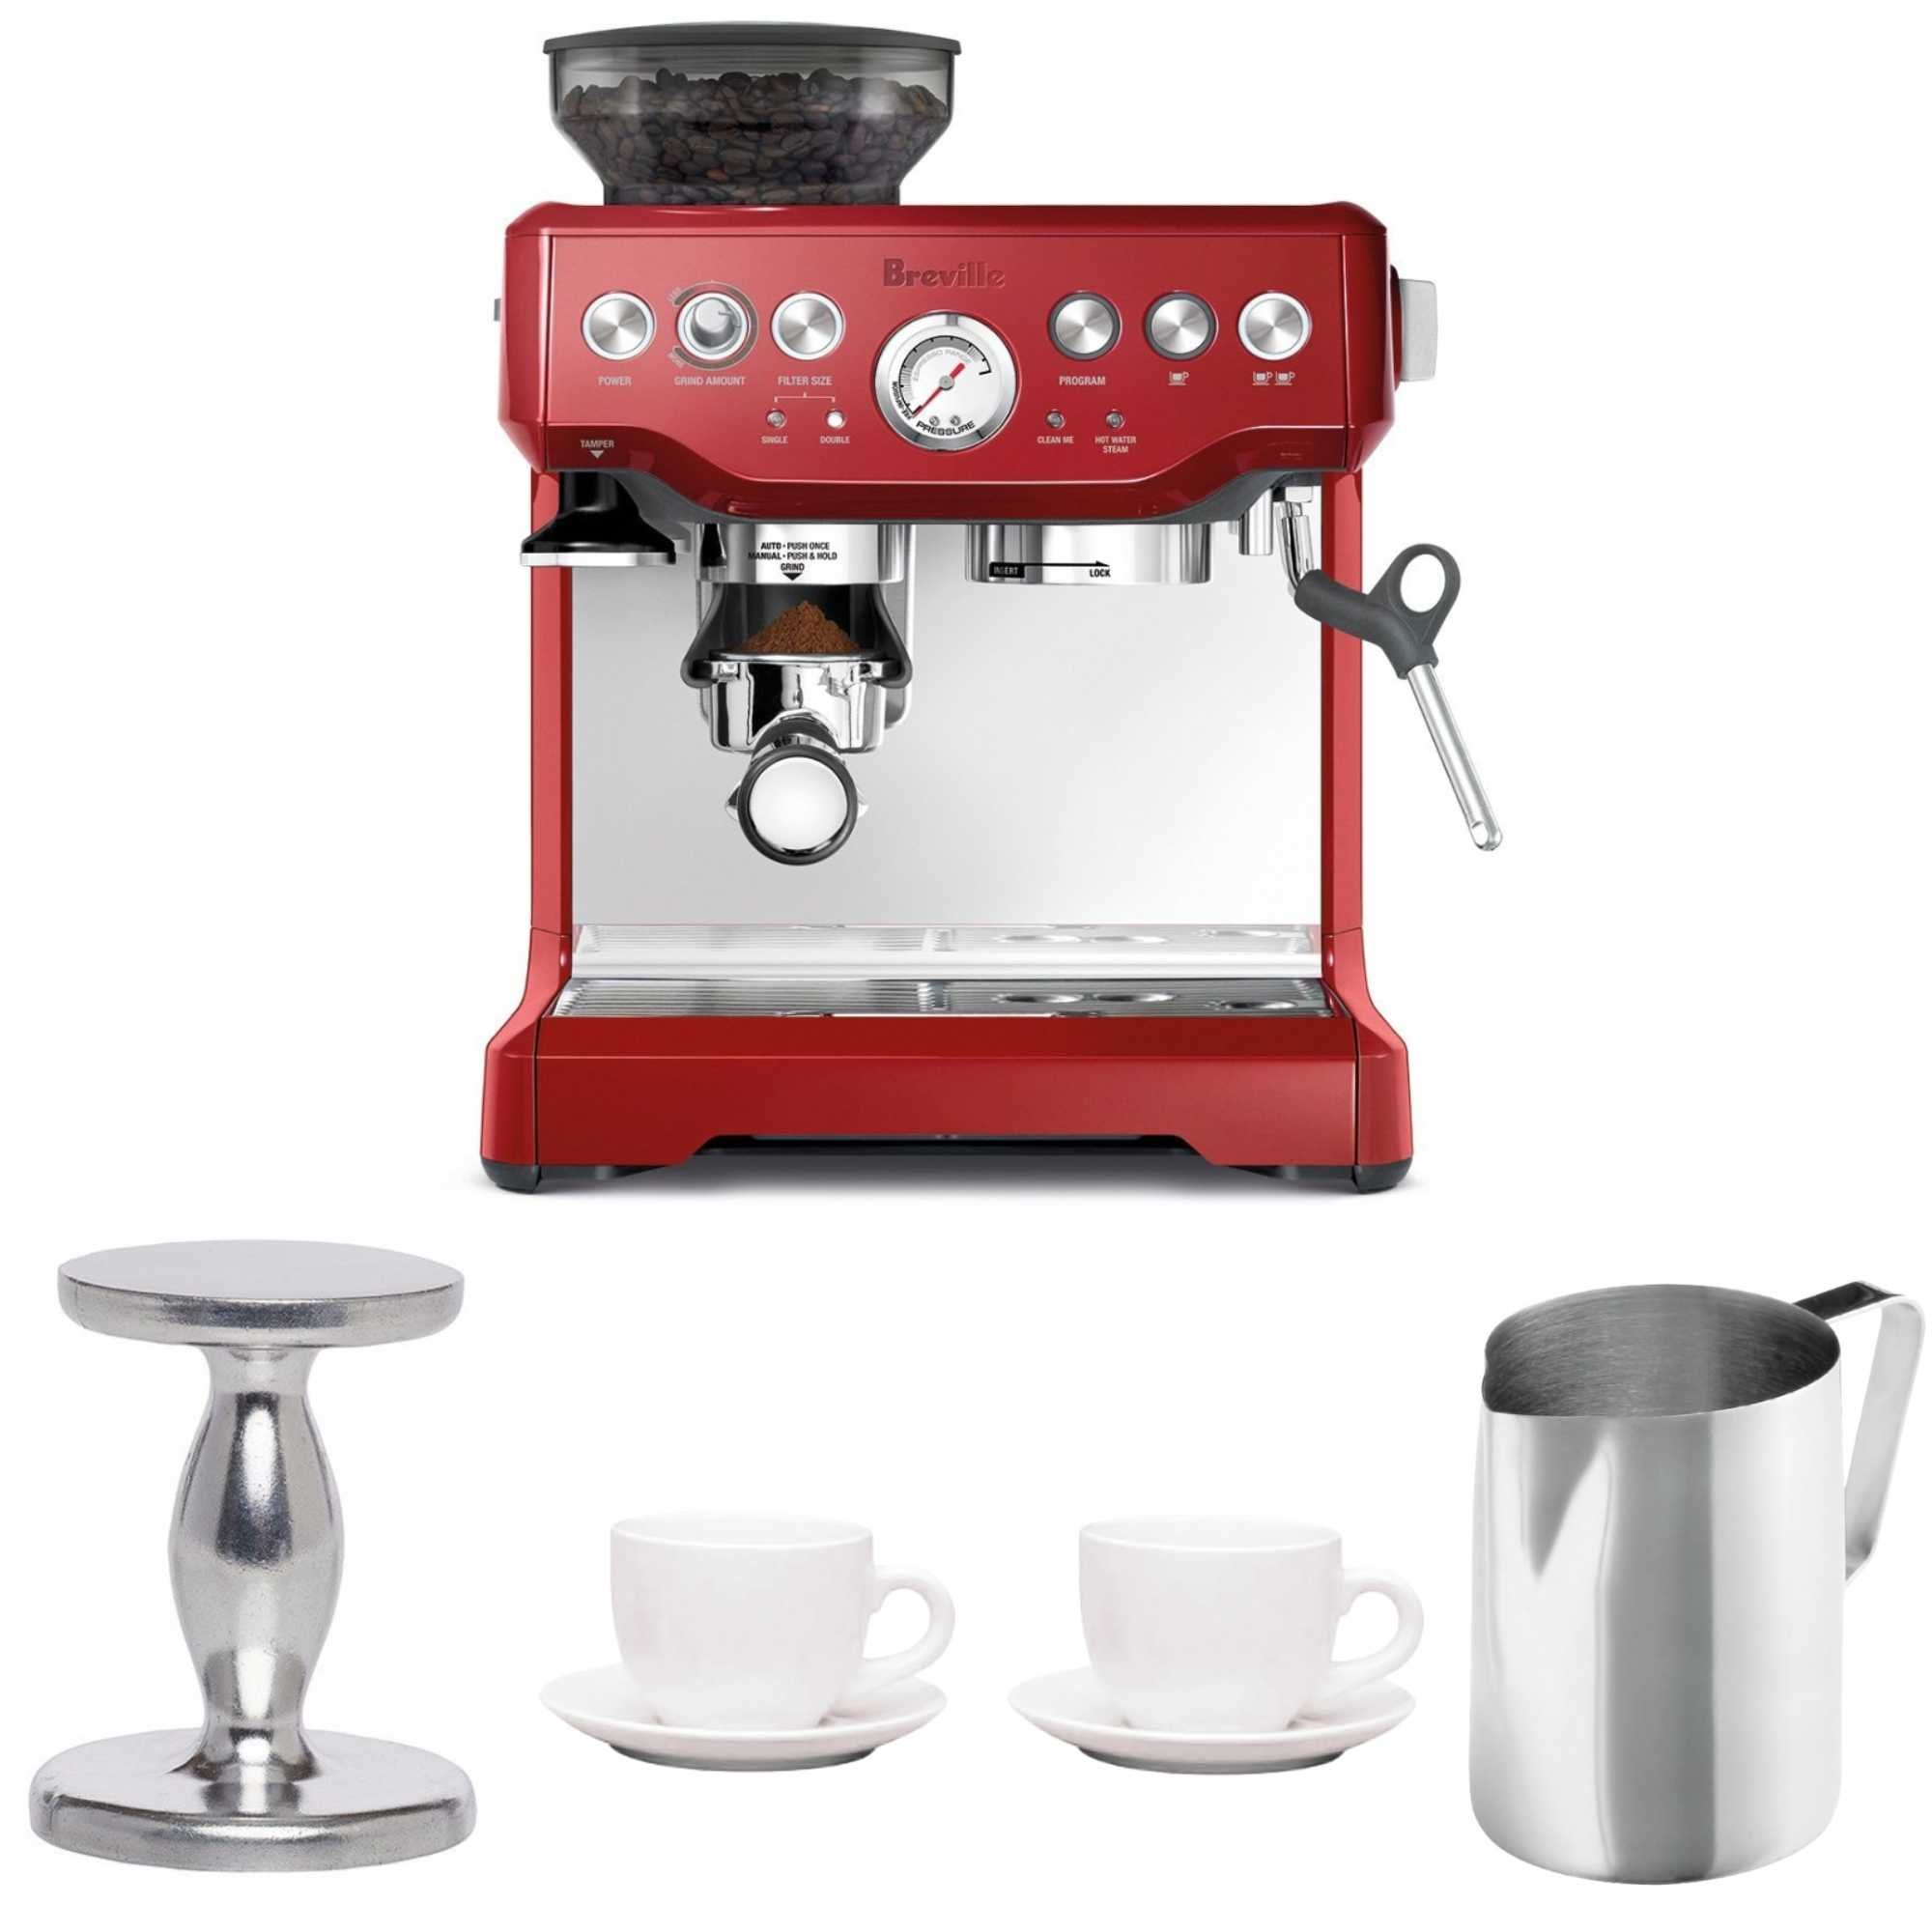 Buy Breville Bes870bsxl The Barista Express Coffee Machine